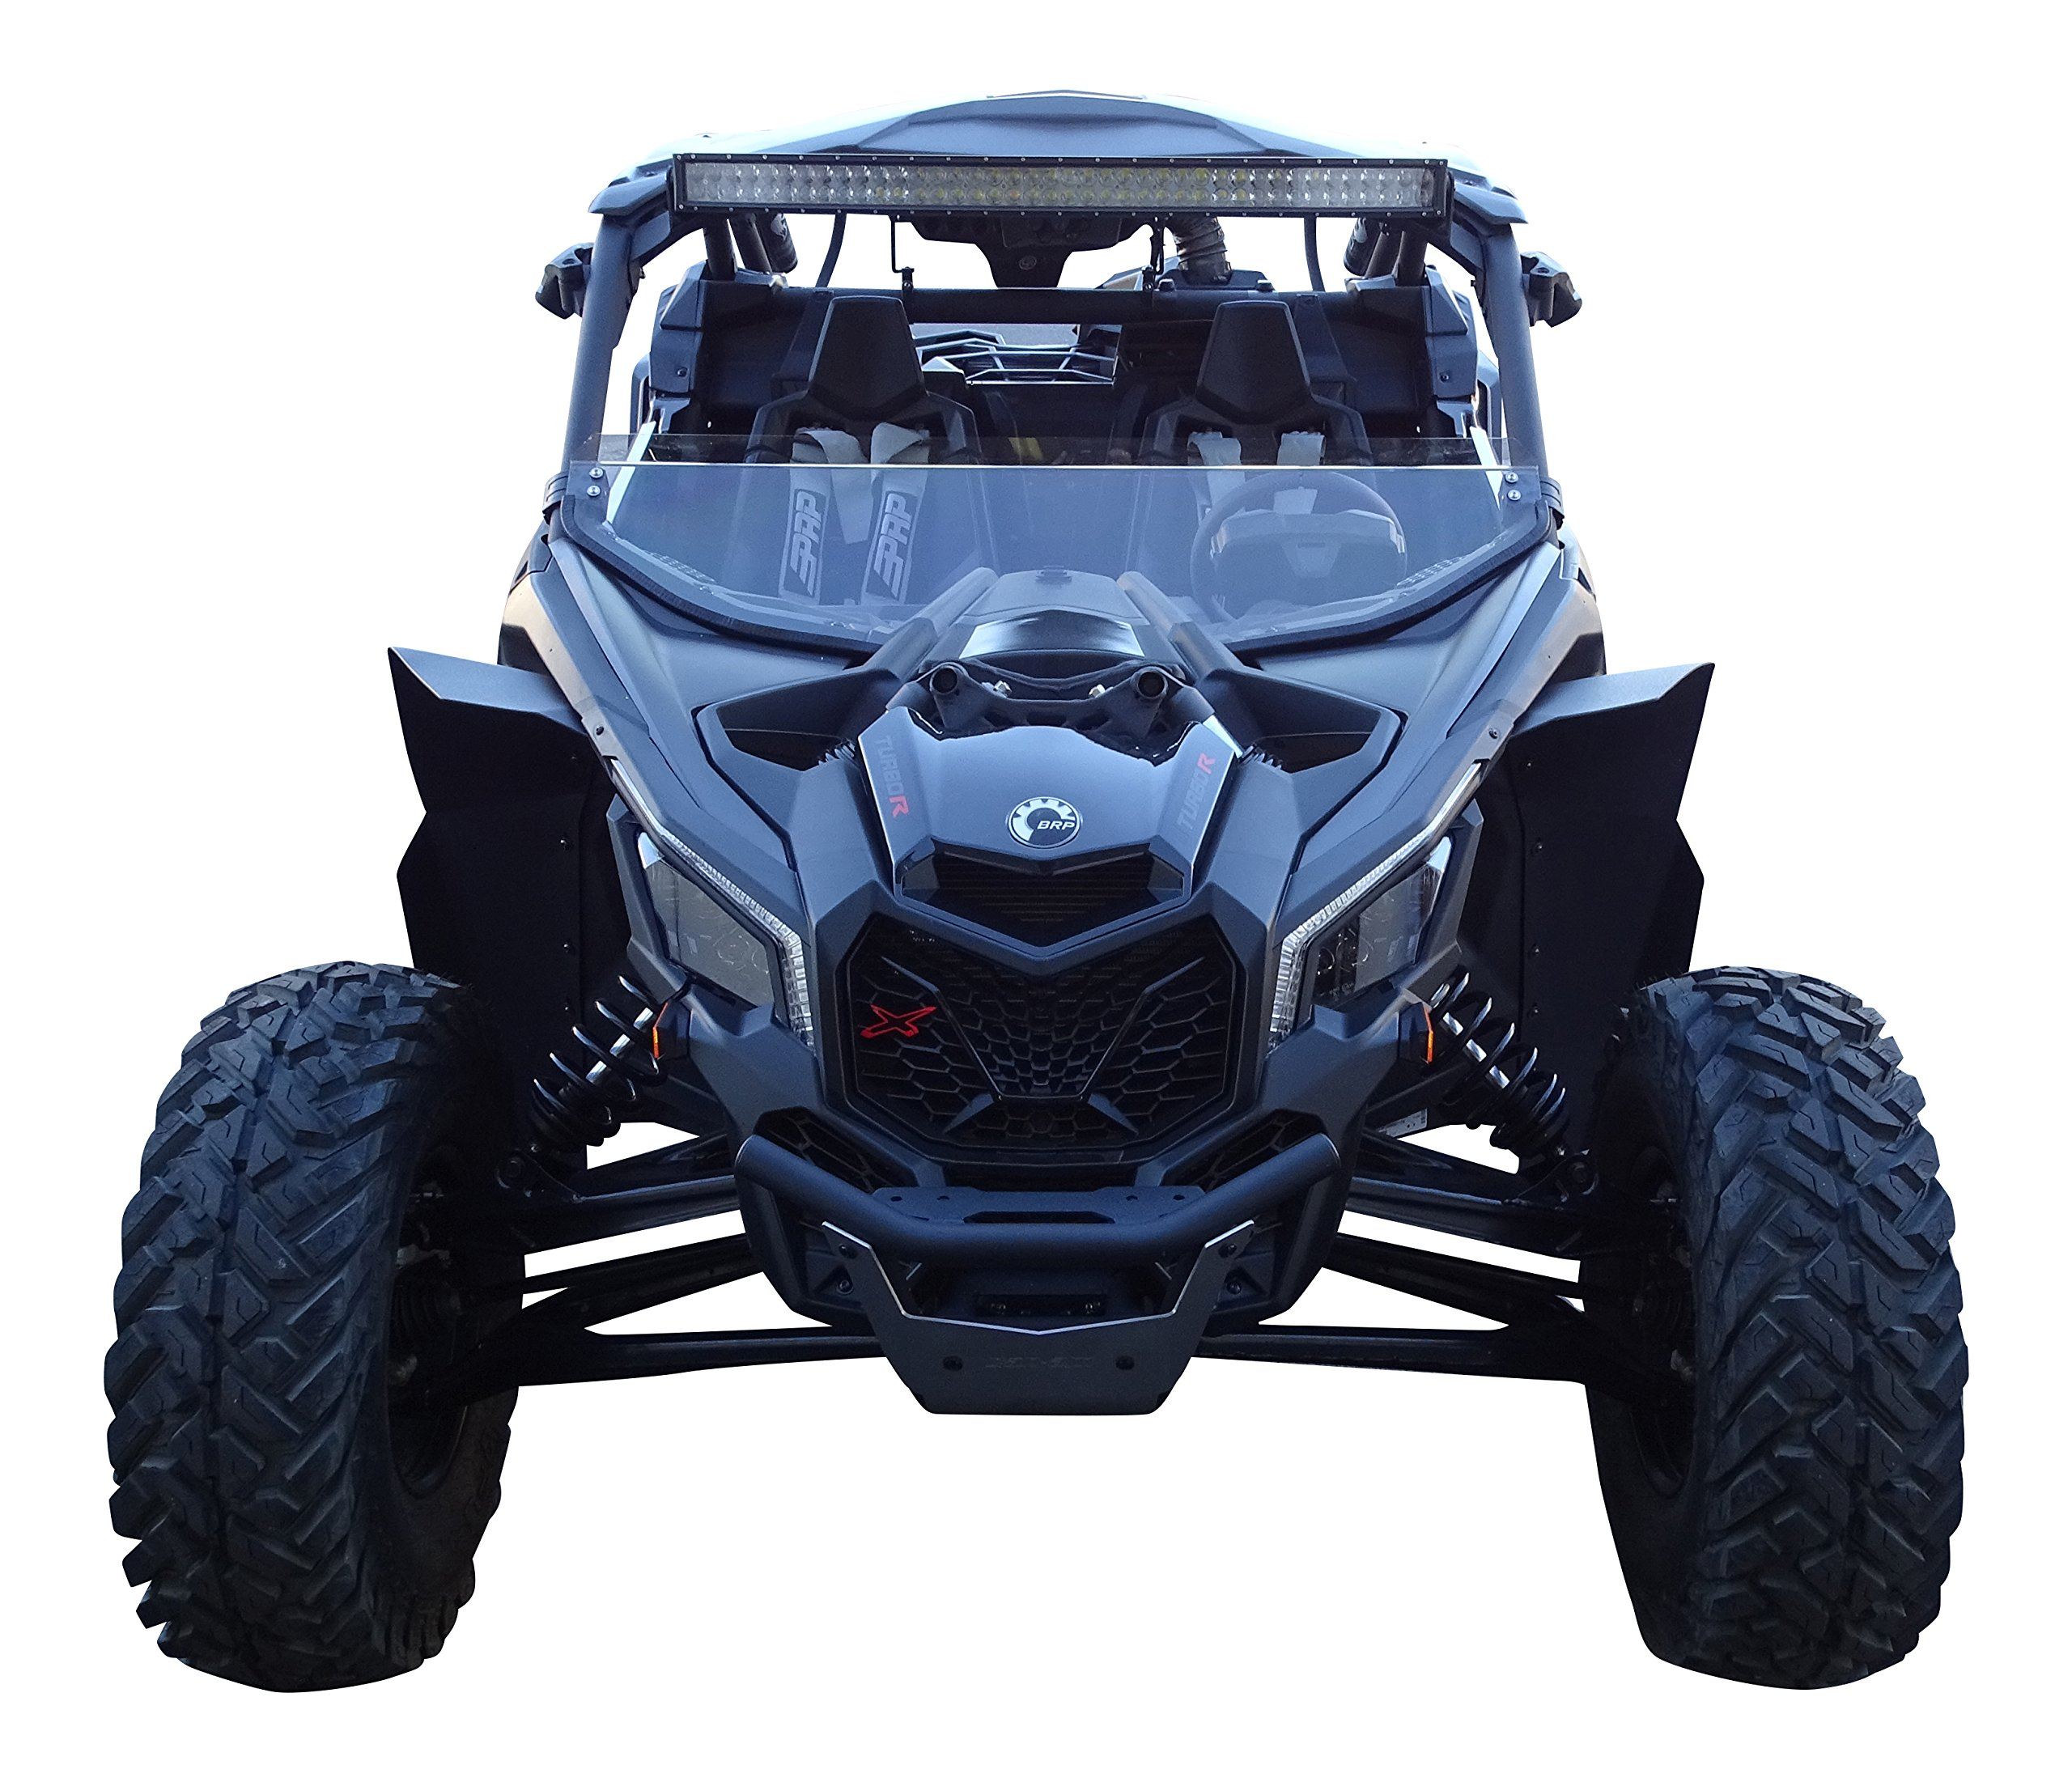 MudBusters fender flares mud flaps for the Can-Am Maverick X3 & X3 Max (X3 DS & Base) by MudBusters